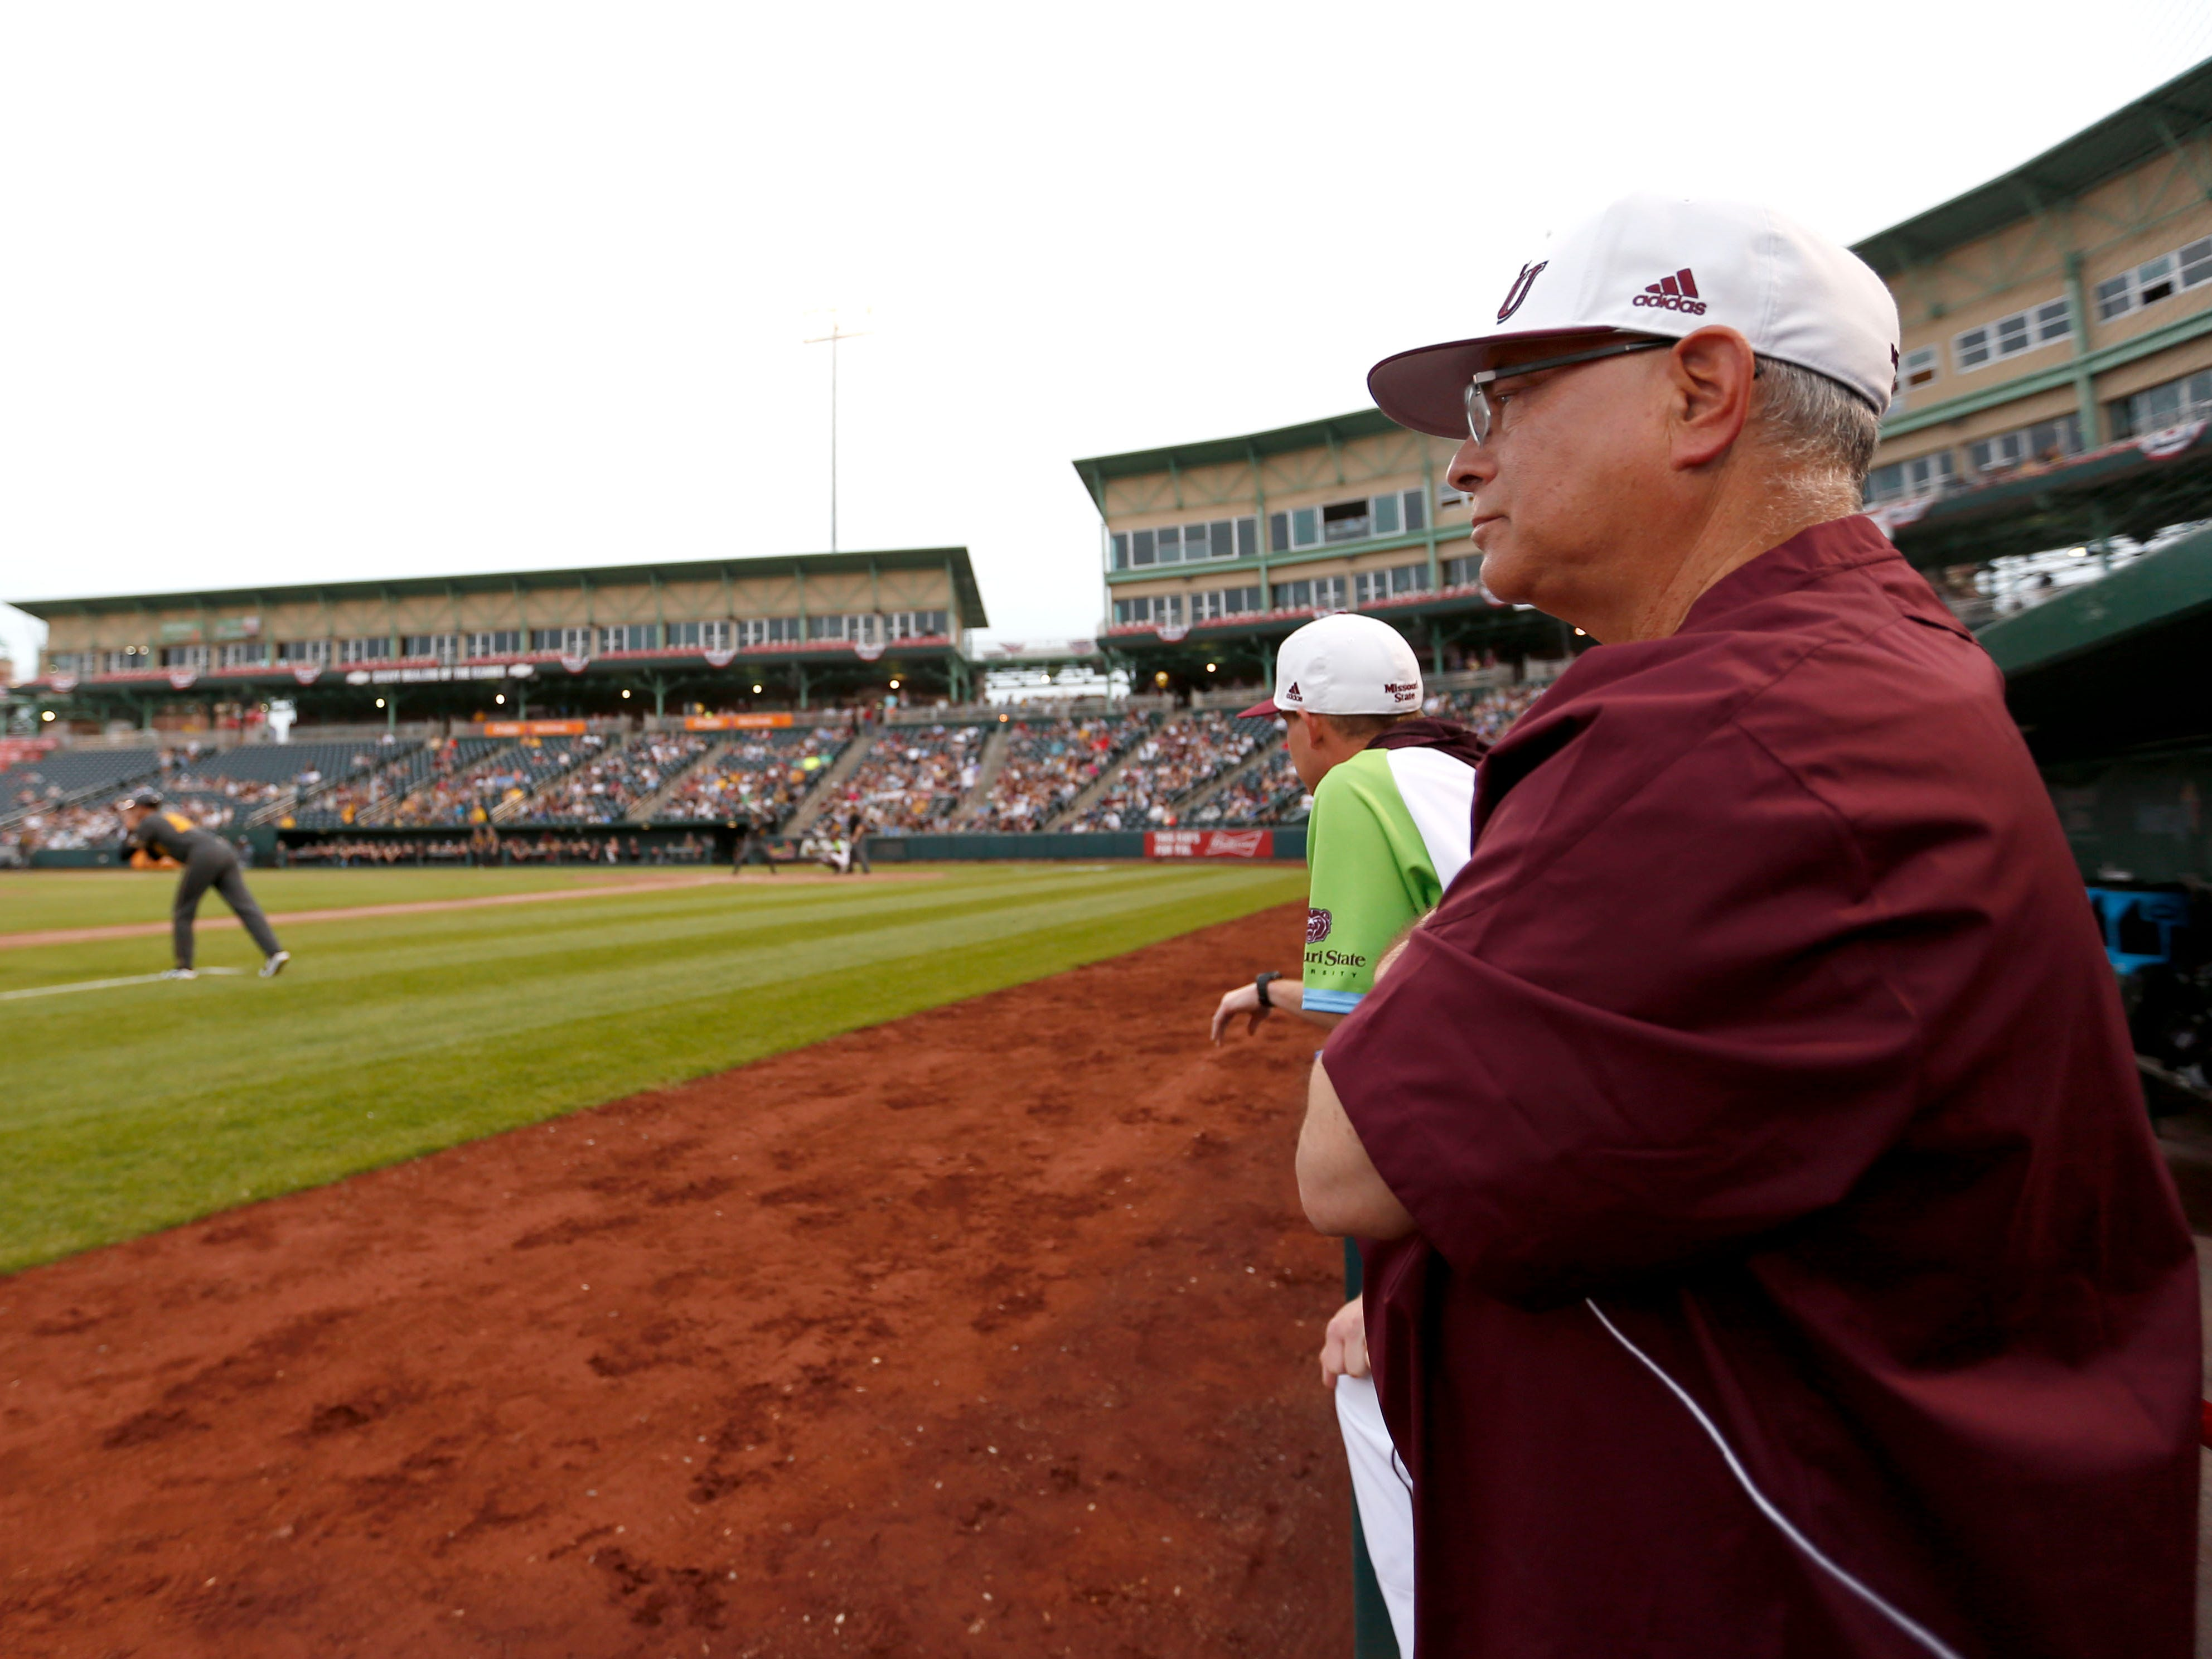 Missouri State head coach Keith Guttin watches as the Bears take on the Mizzou Tigers at Hammons Field on Tuesday, April 16, 2019.